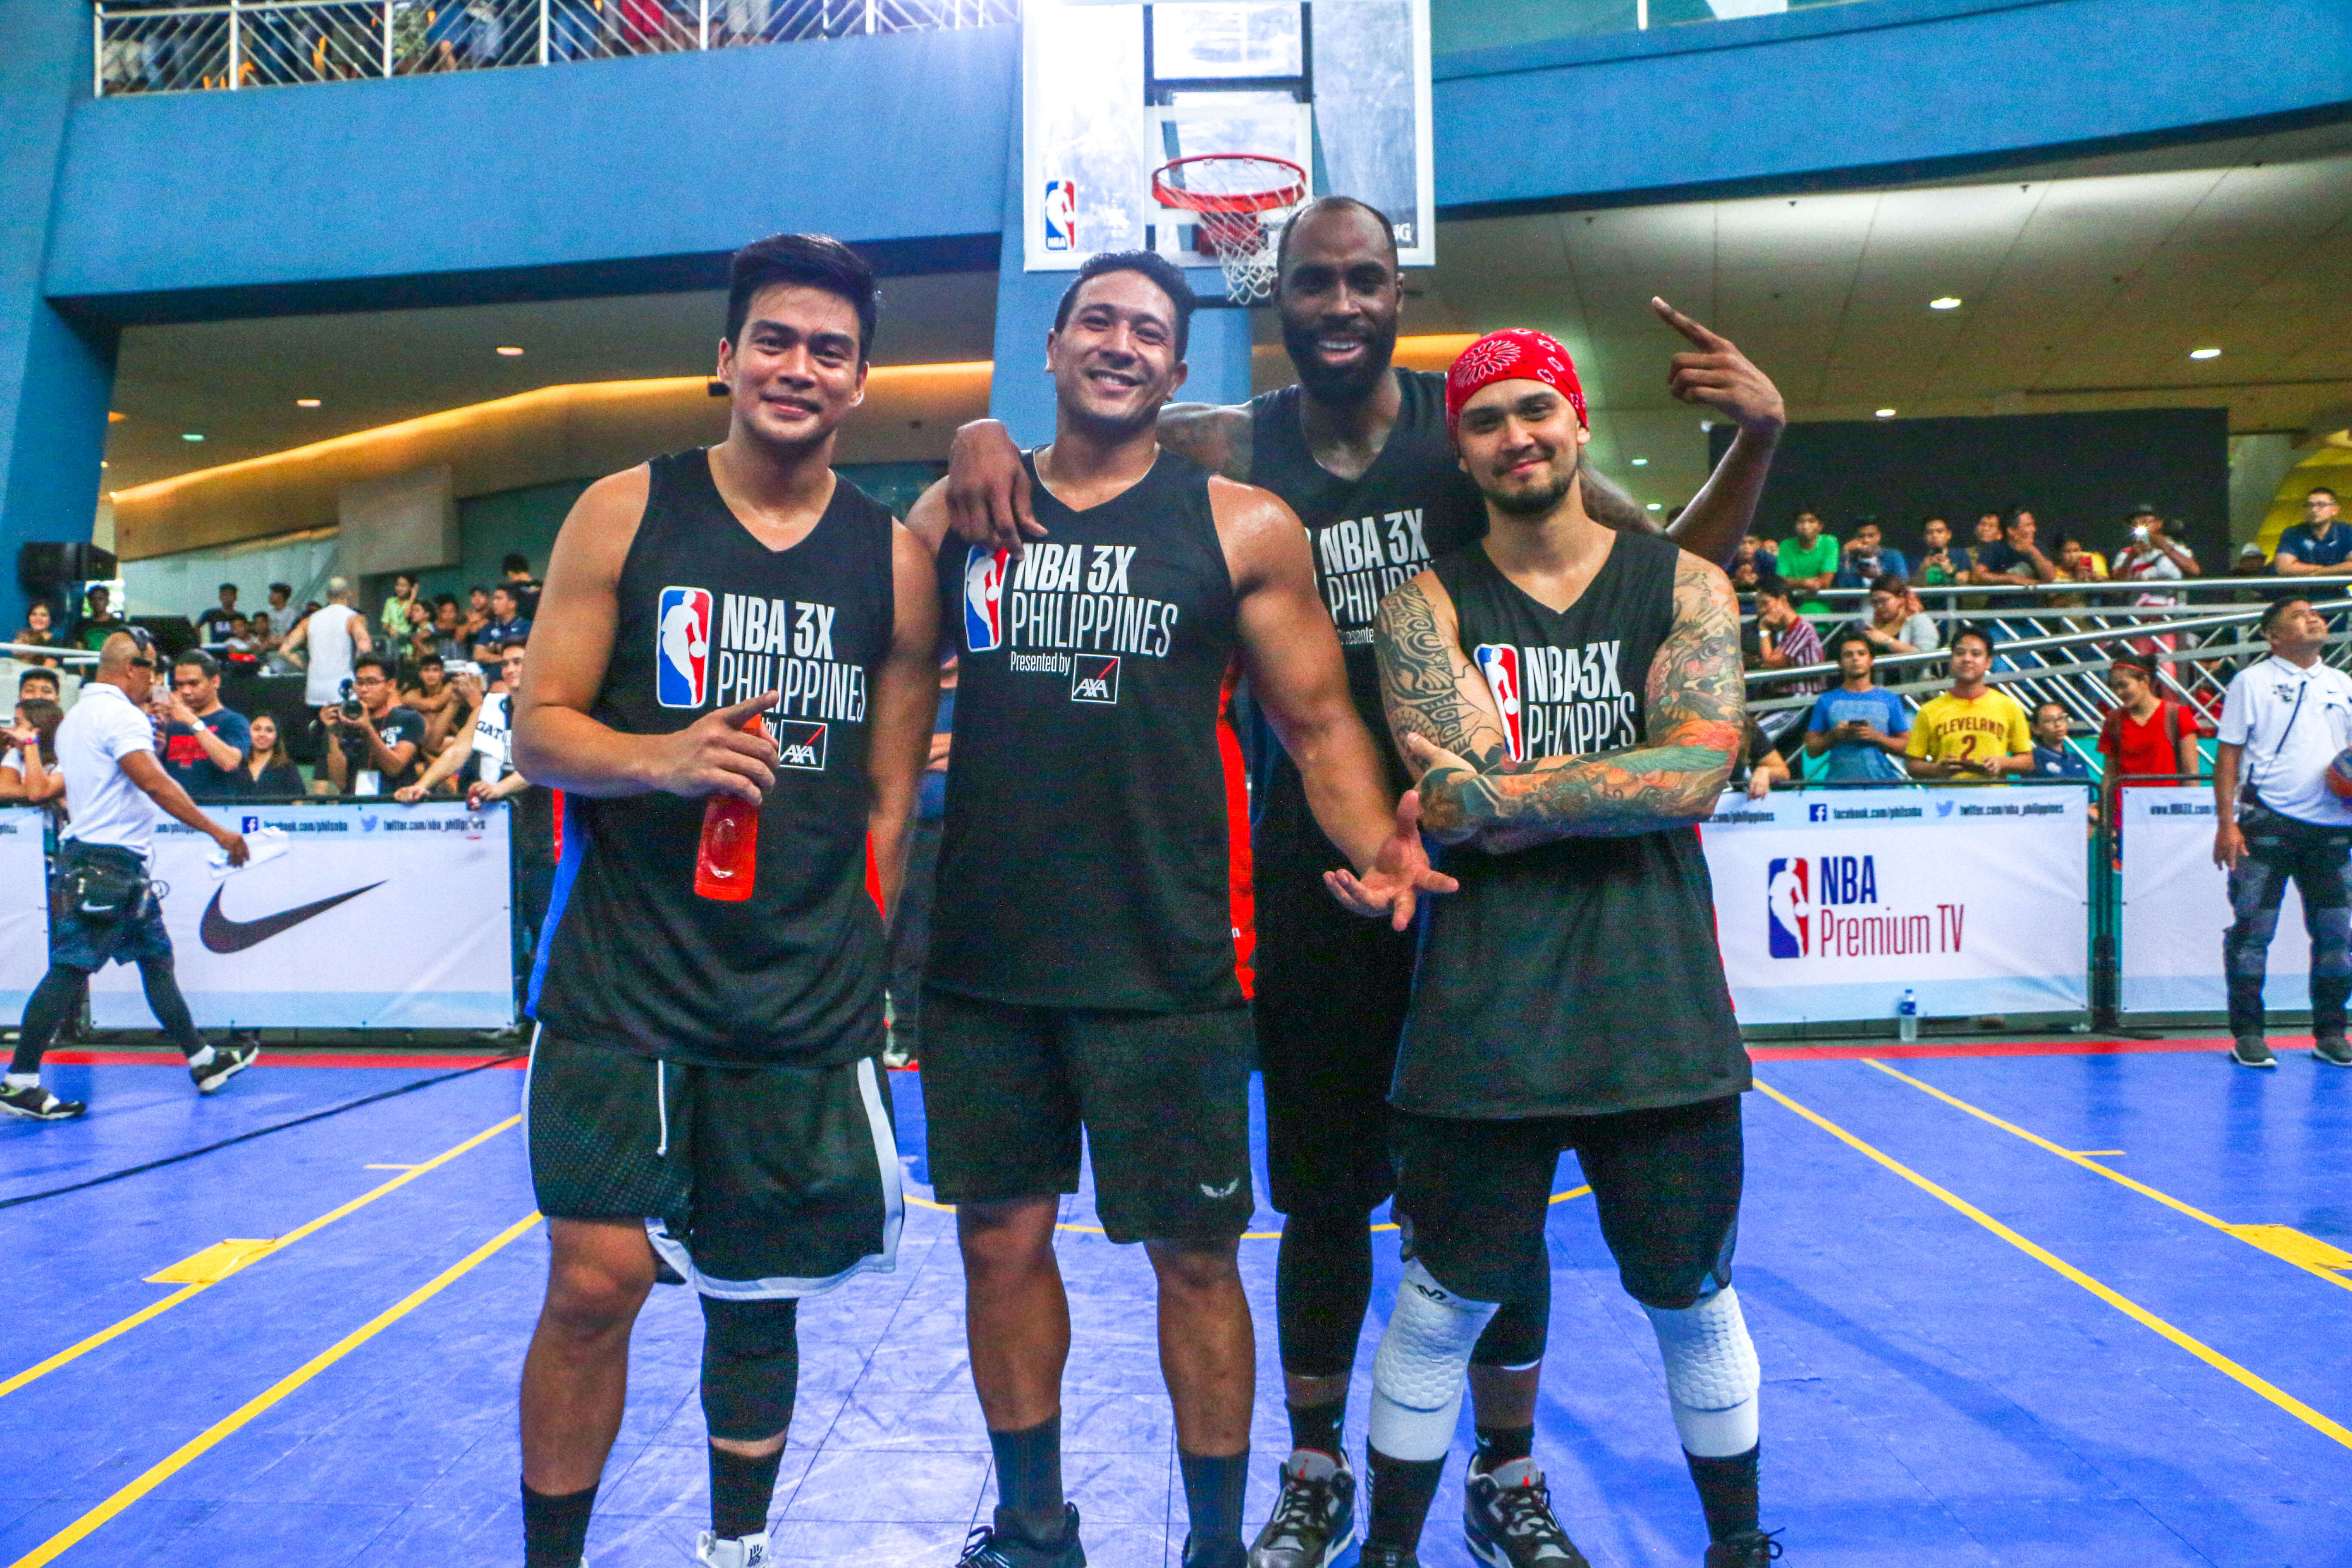 832bf2517d46 ... passionate Filipino fans to a competitive 3-on-3 tournament featuring  men s and women s teams and authetic NBA entertainment. Five-time NBA All- Star Tim ...